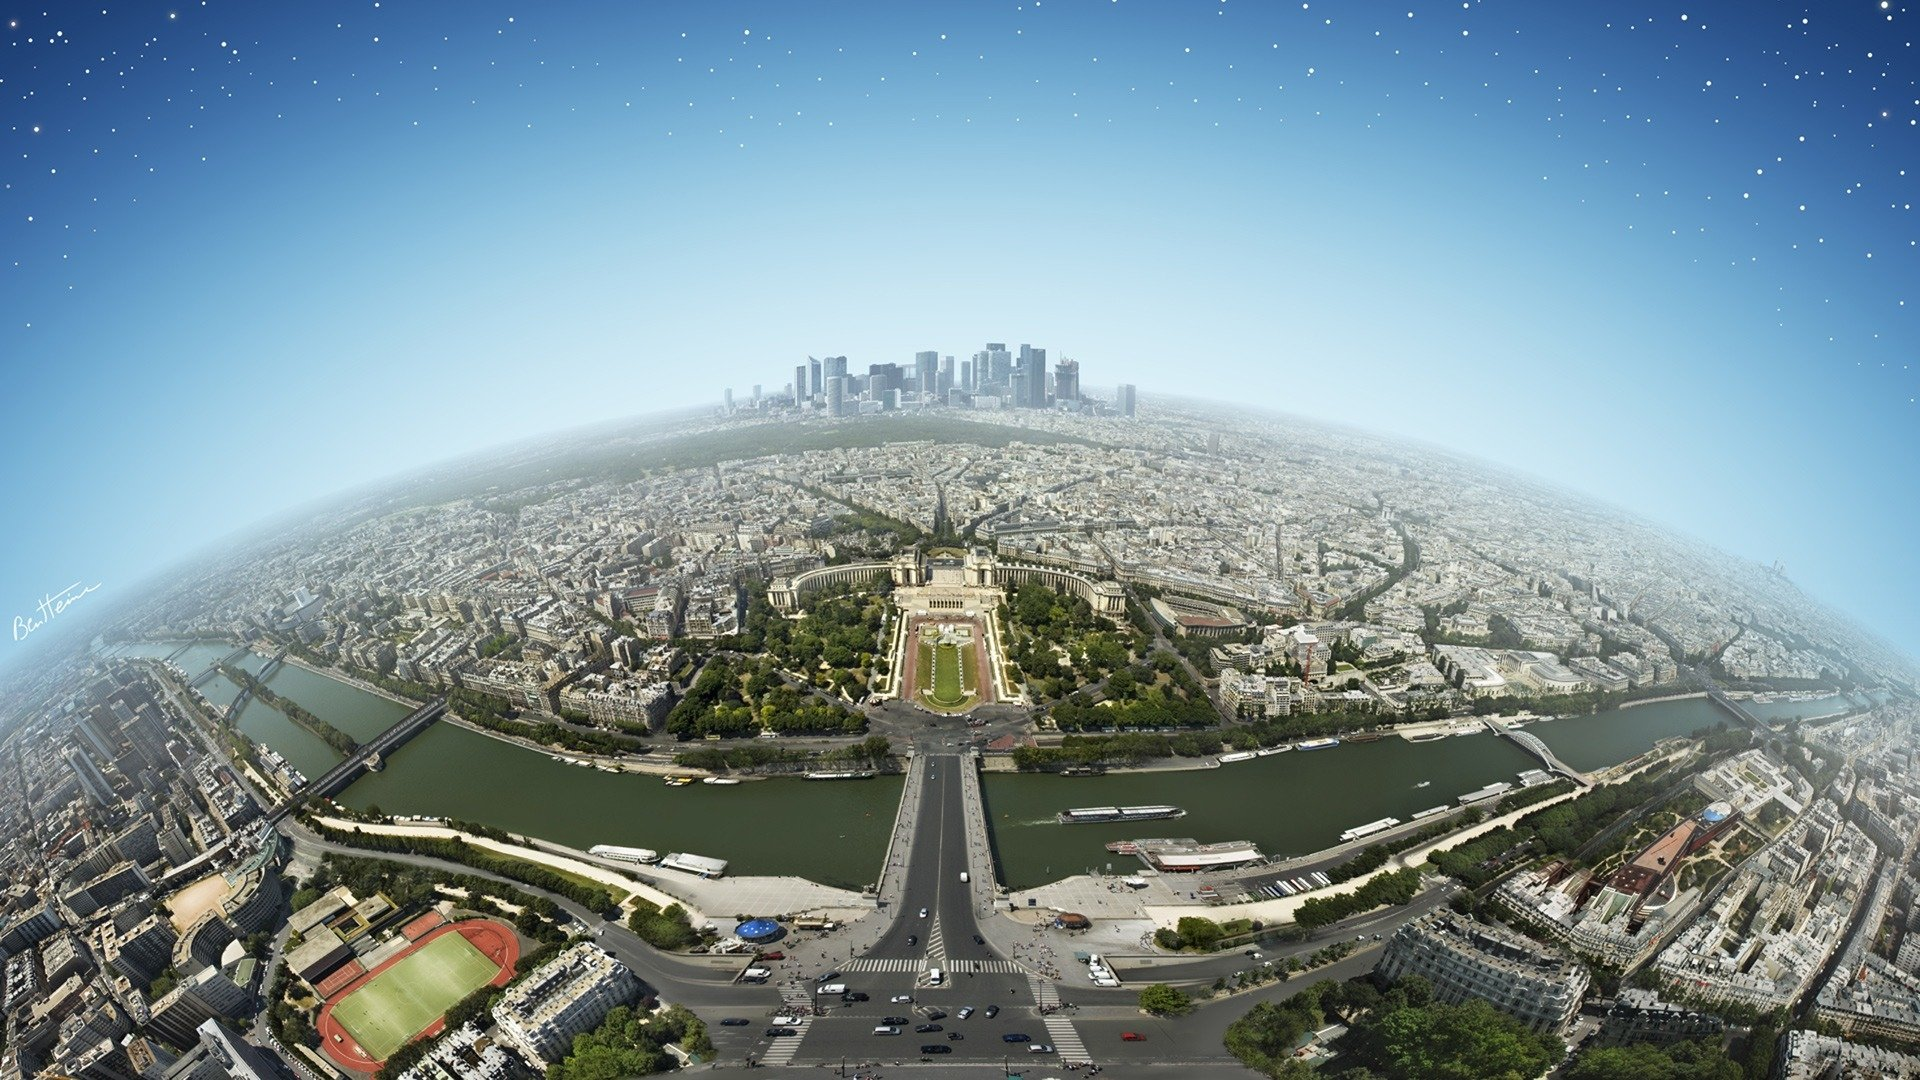 129 Paris Hd Wallpapers Background Images Wallpaper Abyss